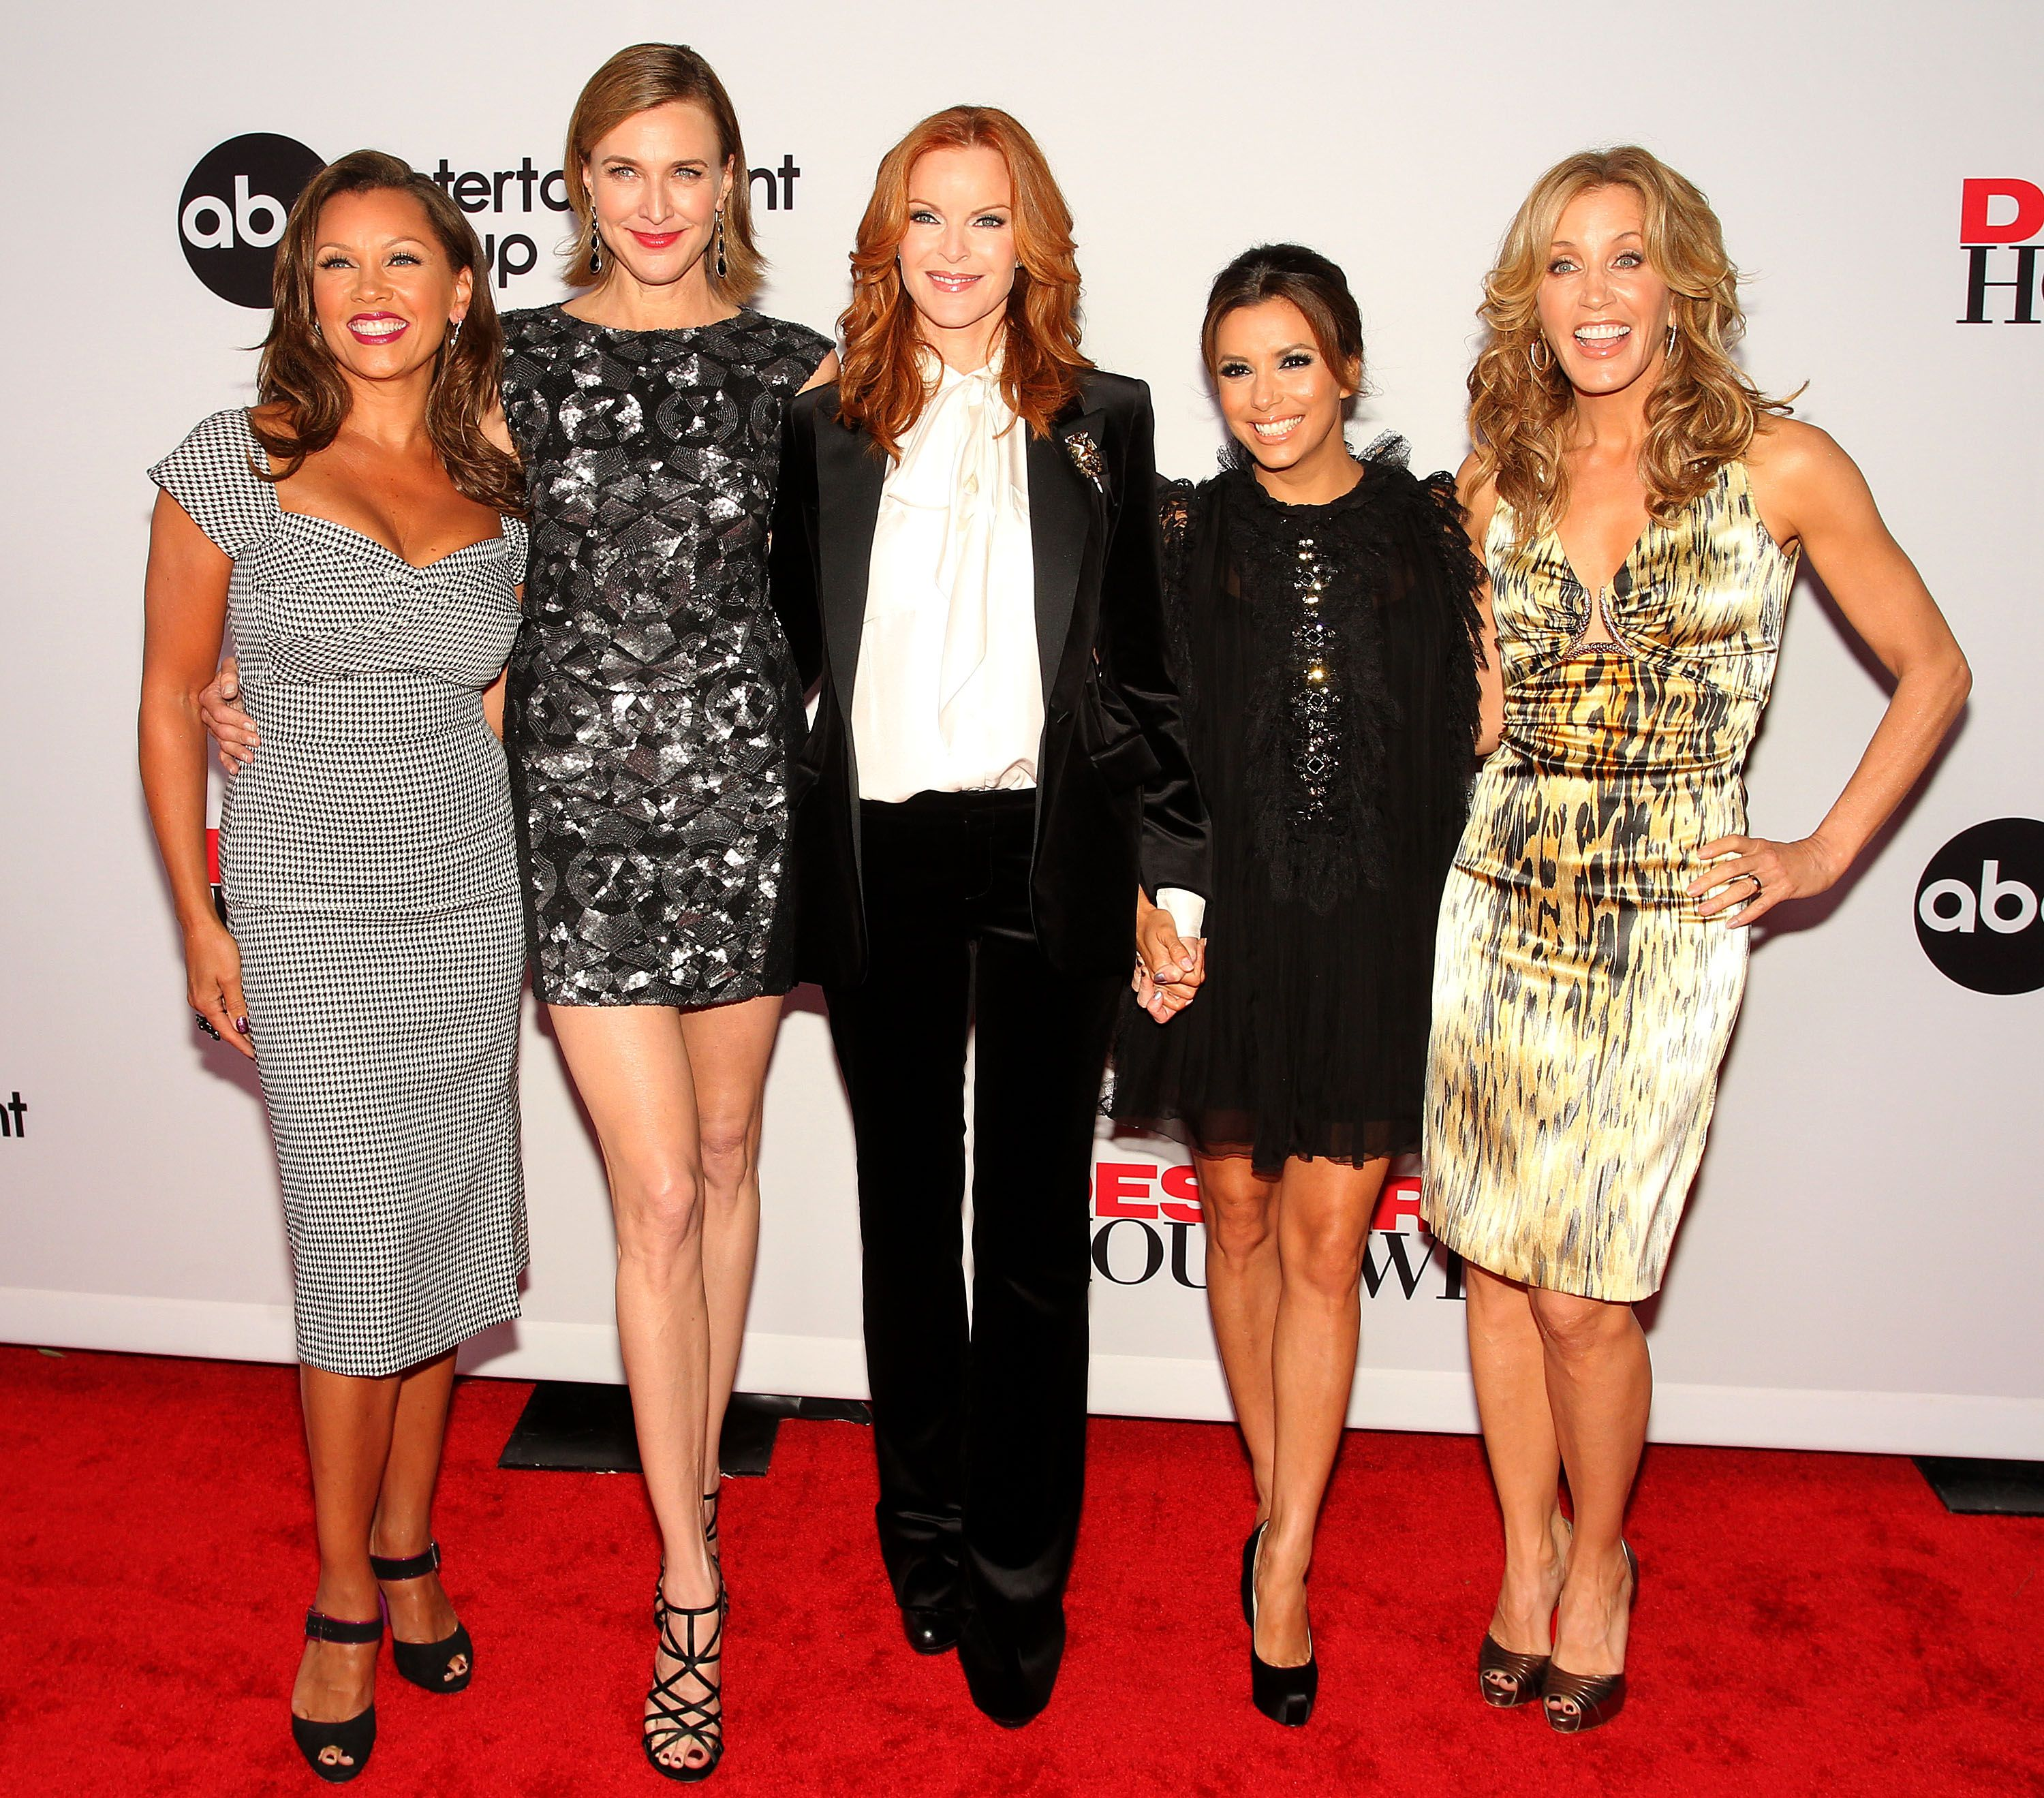 Desperate Housewives Cast To Reunite Without Two Main Characters The production is very good, the cast is flawless and. desperate housewives cast to reunite